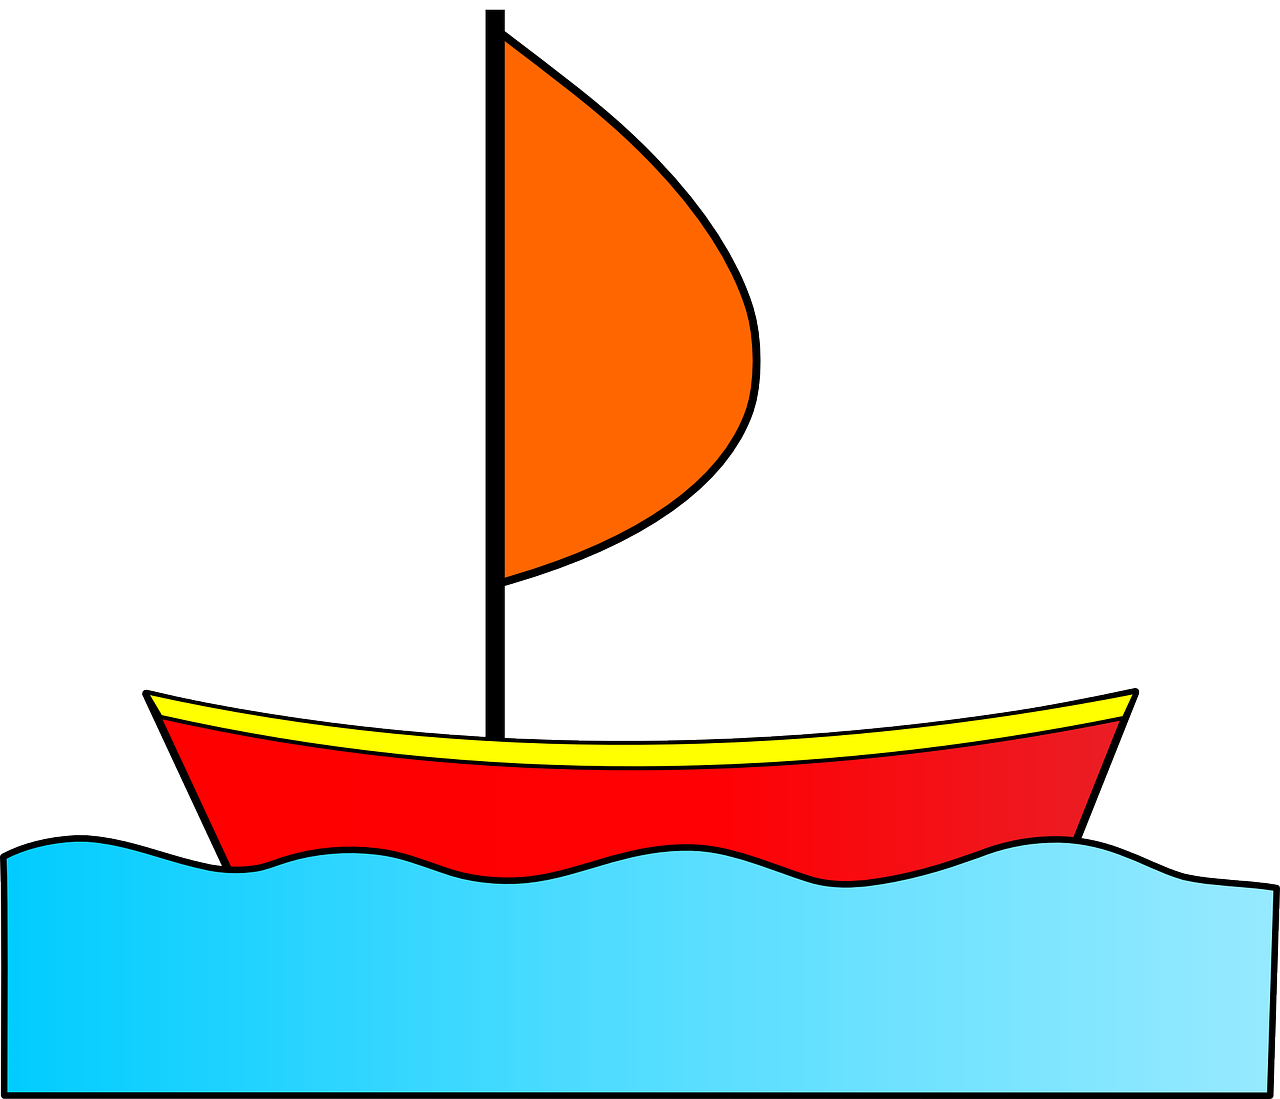 How to draw a boat 18